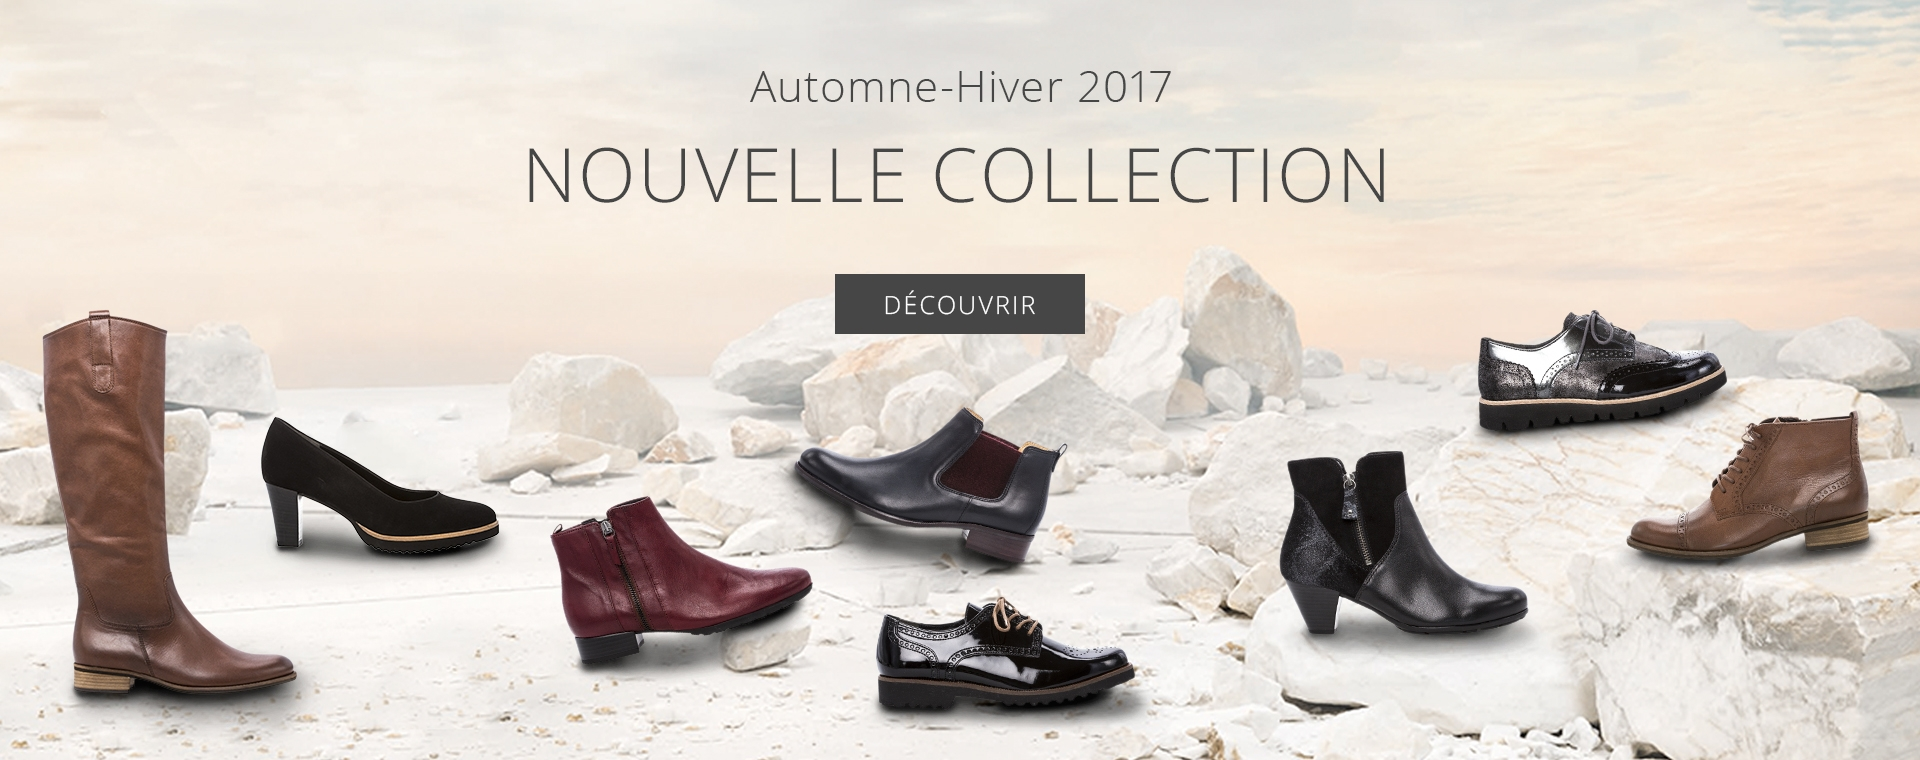 Nouvelle collection AH17